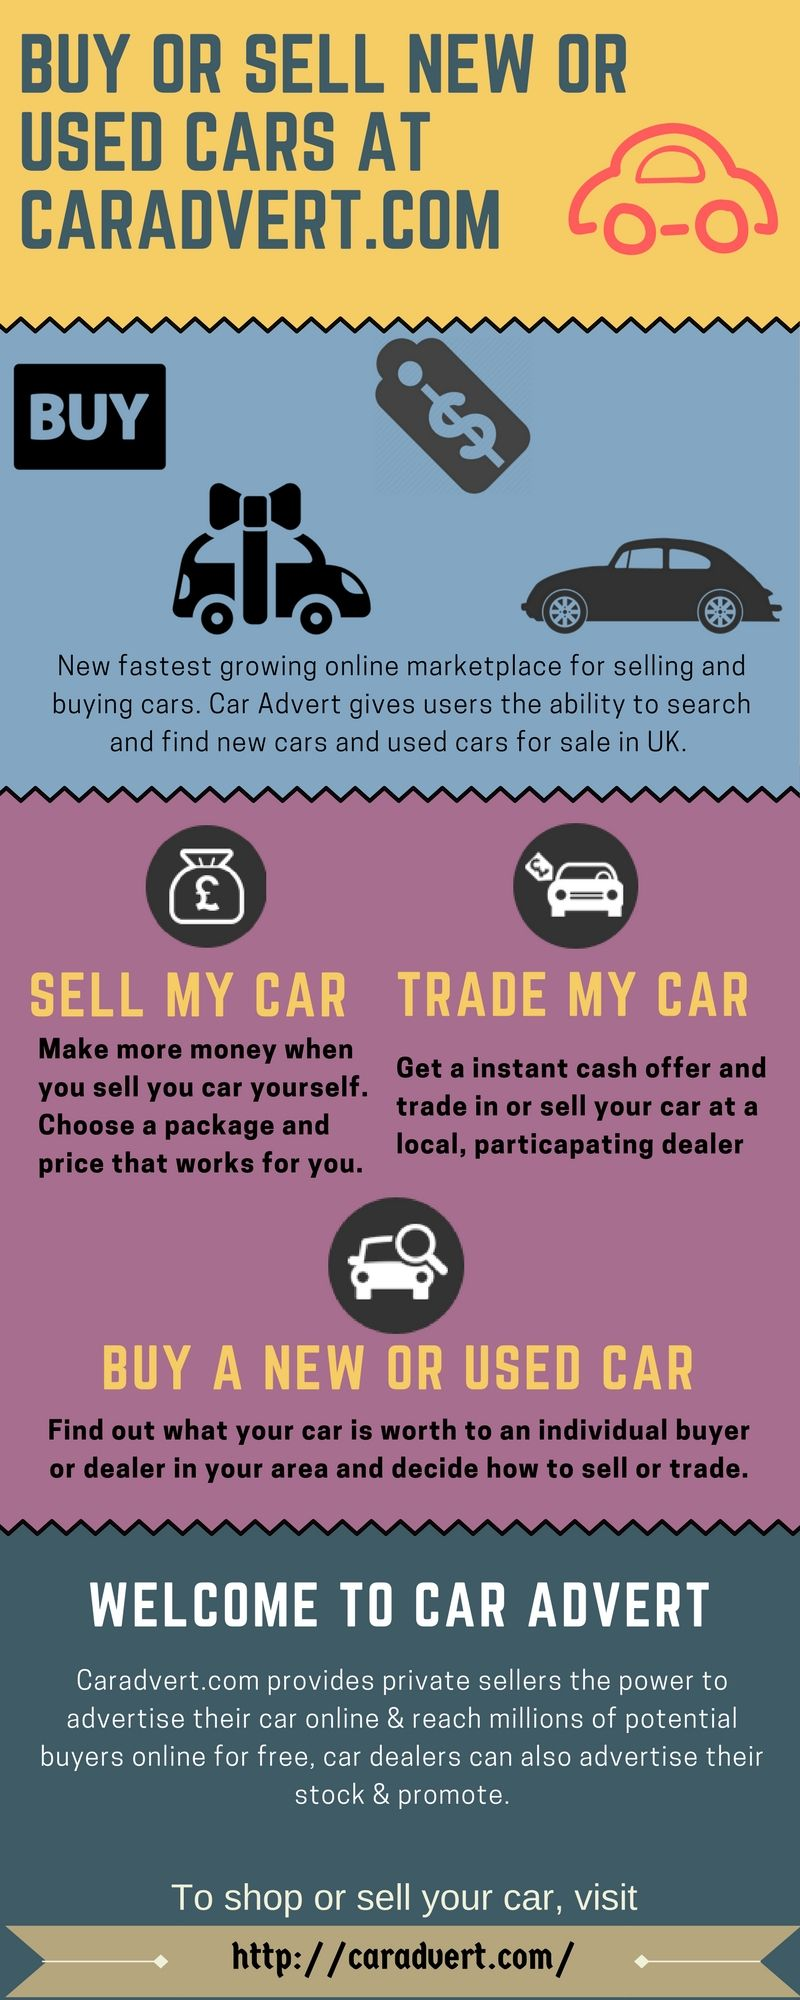 Want to sell you car? Caradvert.com is the best place where you can ...